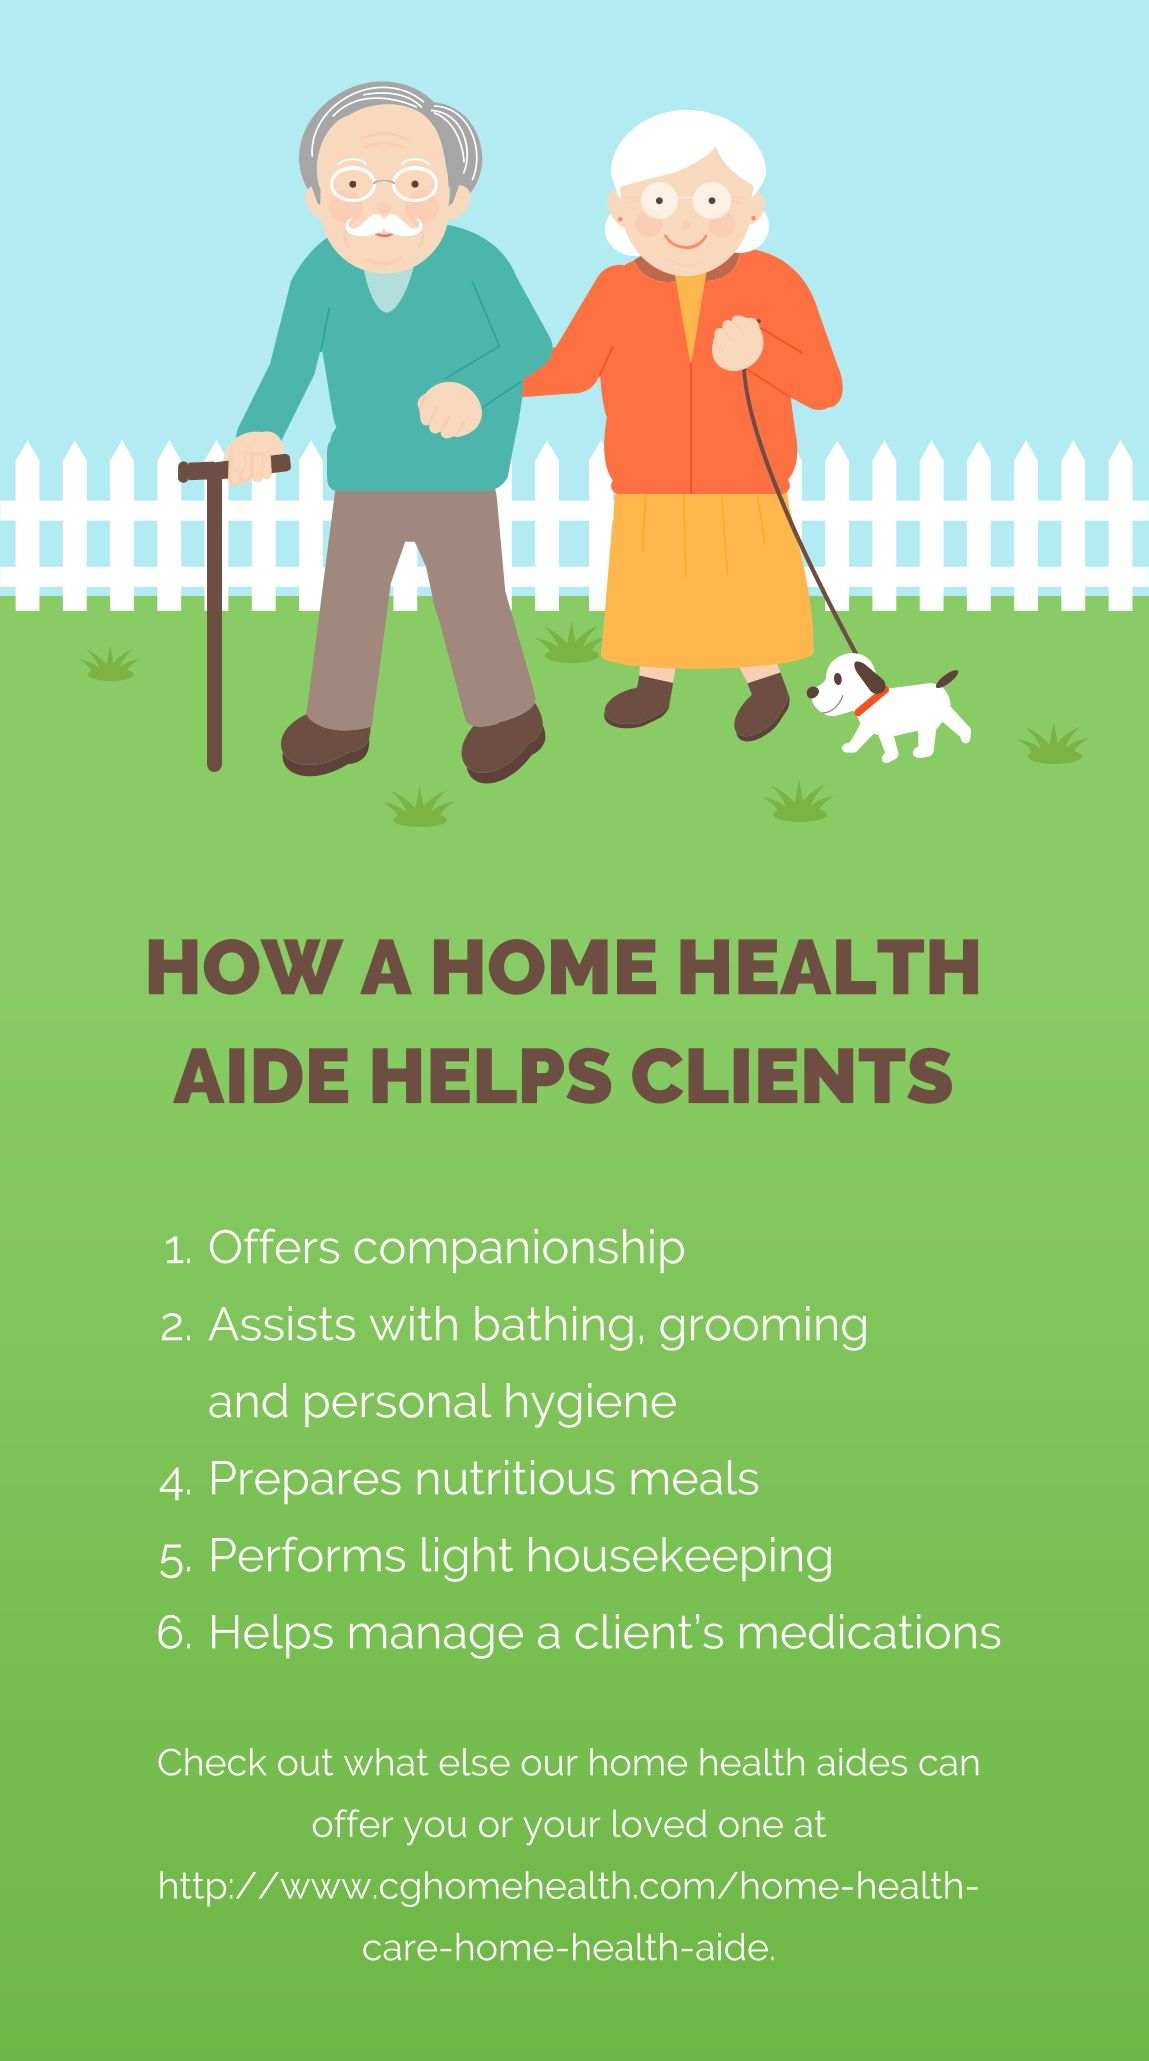 How A Home Health Aide Helps Clients Offers Companionship Assists With Bathing Grooming And Personal Hygiene Home Health Aide Home Health Care Home Health